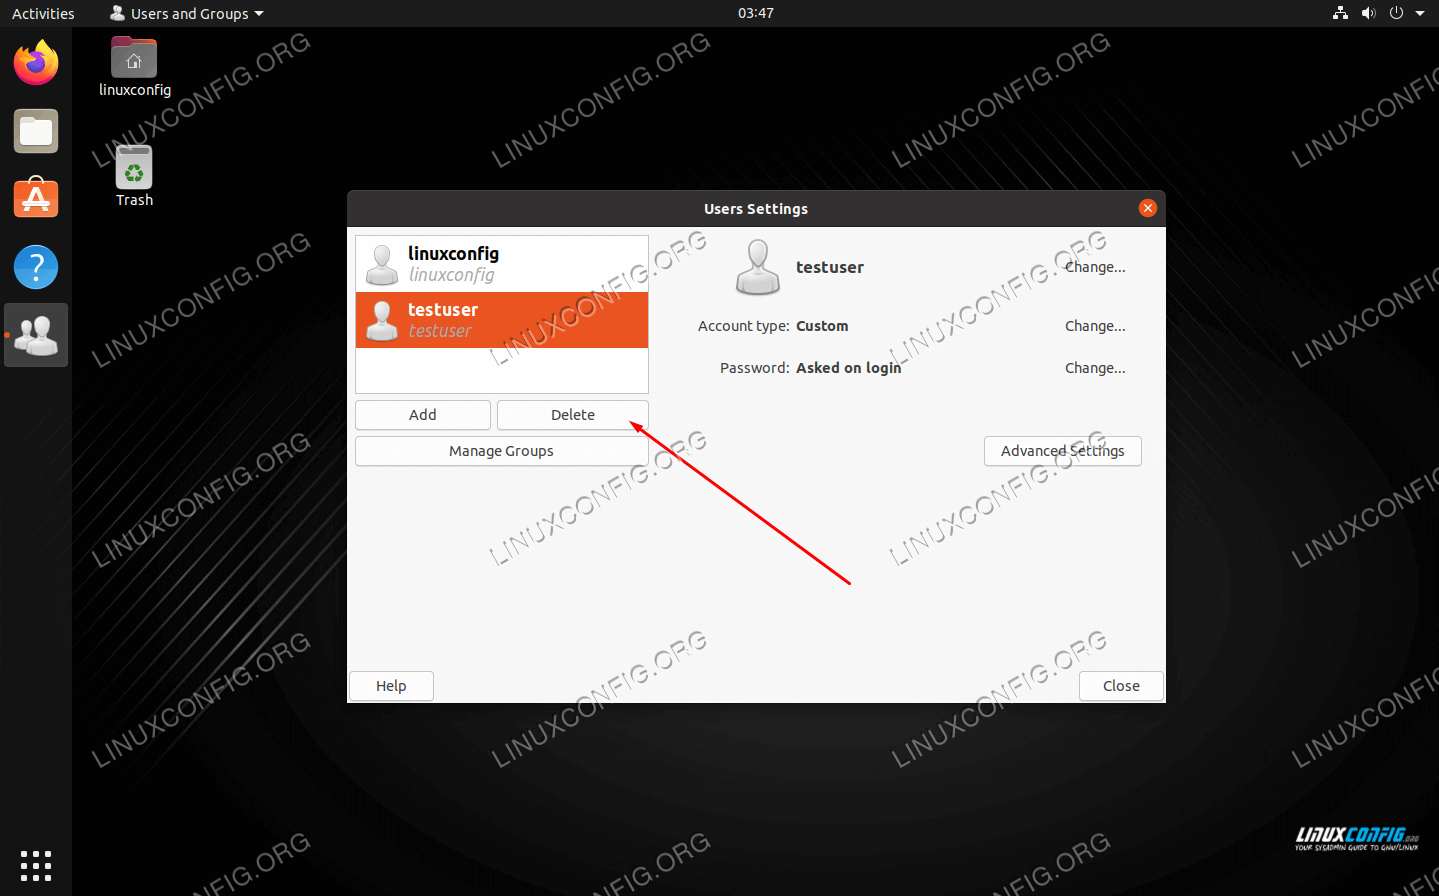 Highlight the user and click the delete button